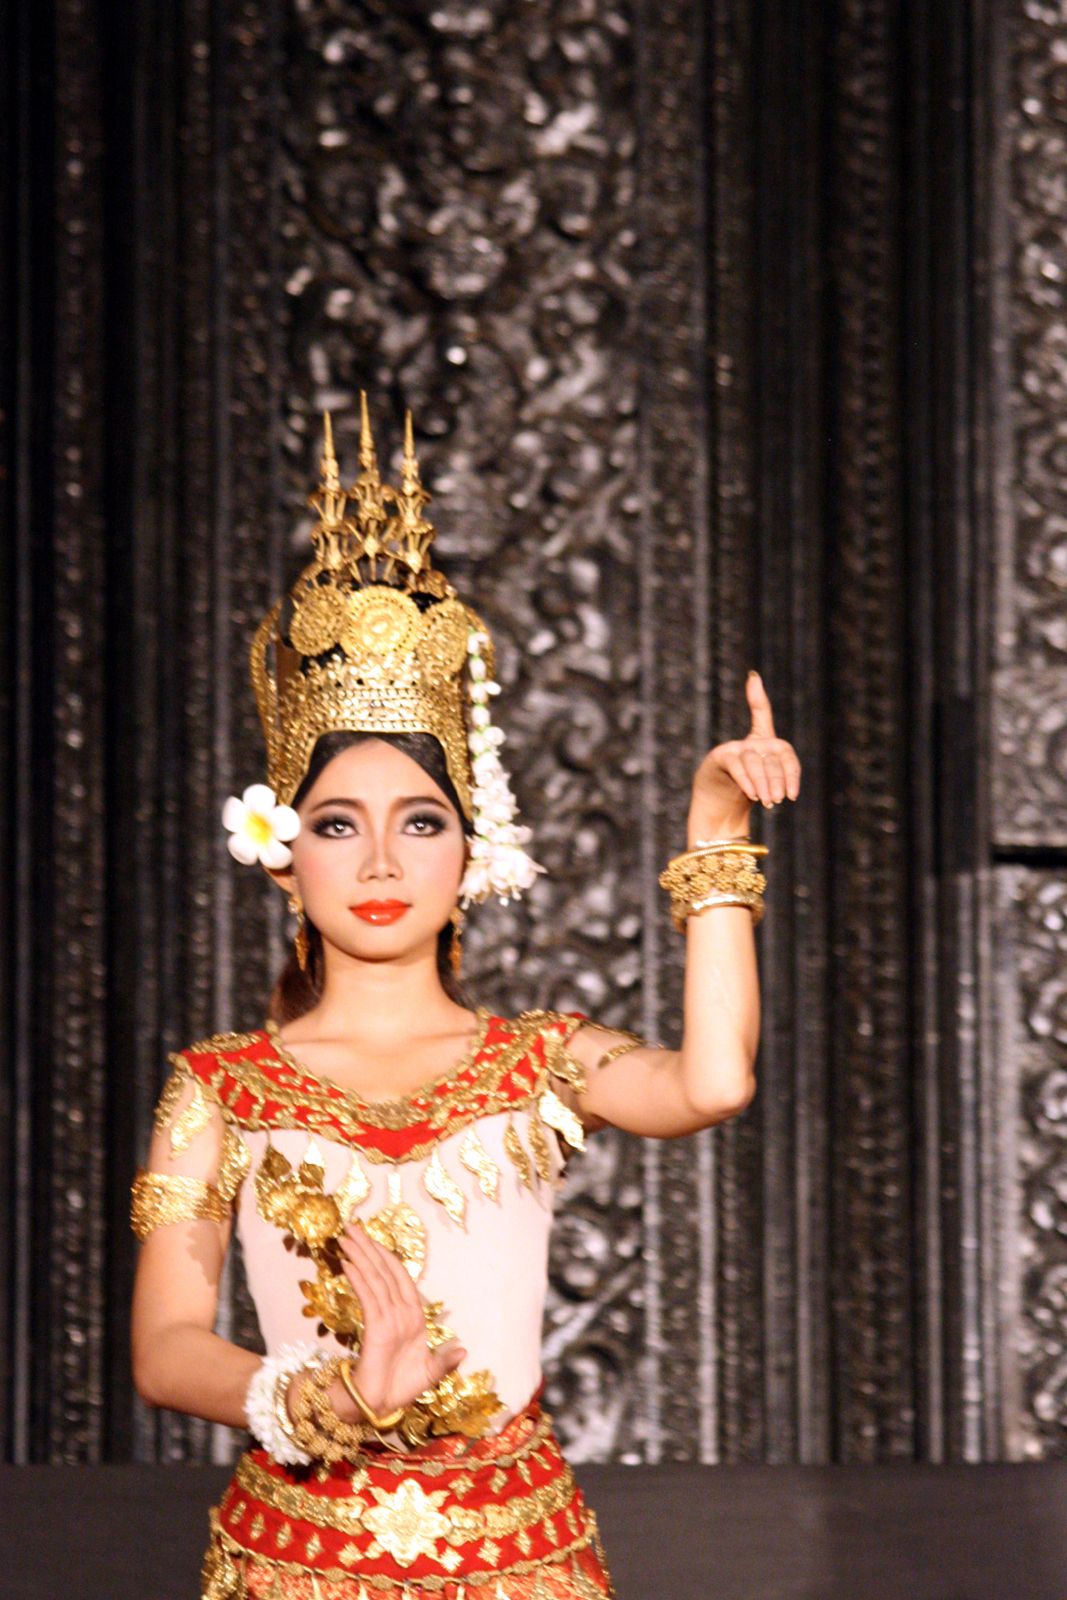 Apsara dancer in a pose. Photo taken by Remi Jouan at Bassac Theatre, Phnom Penh on January 5, 2012.